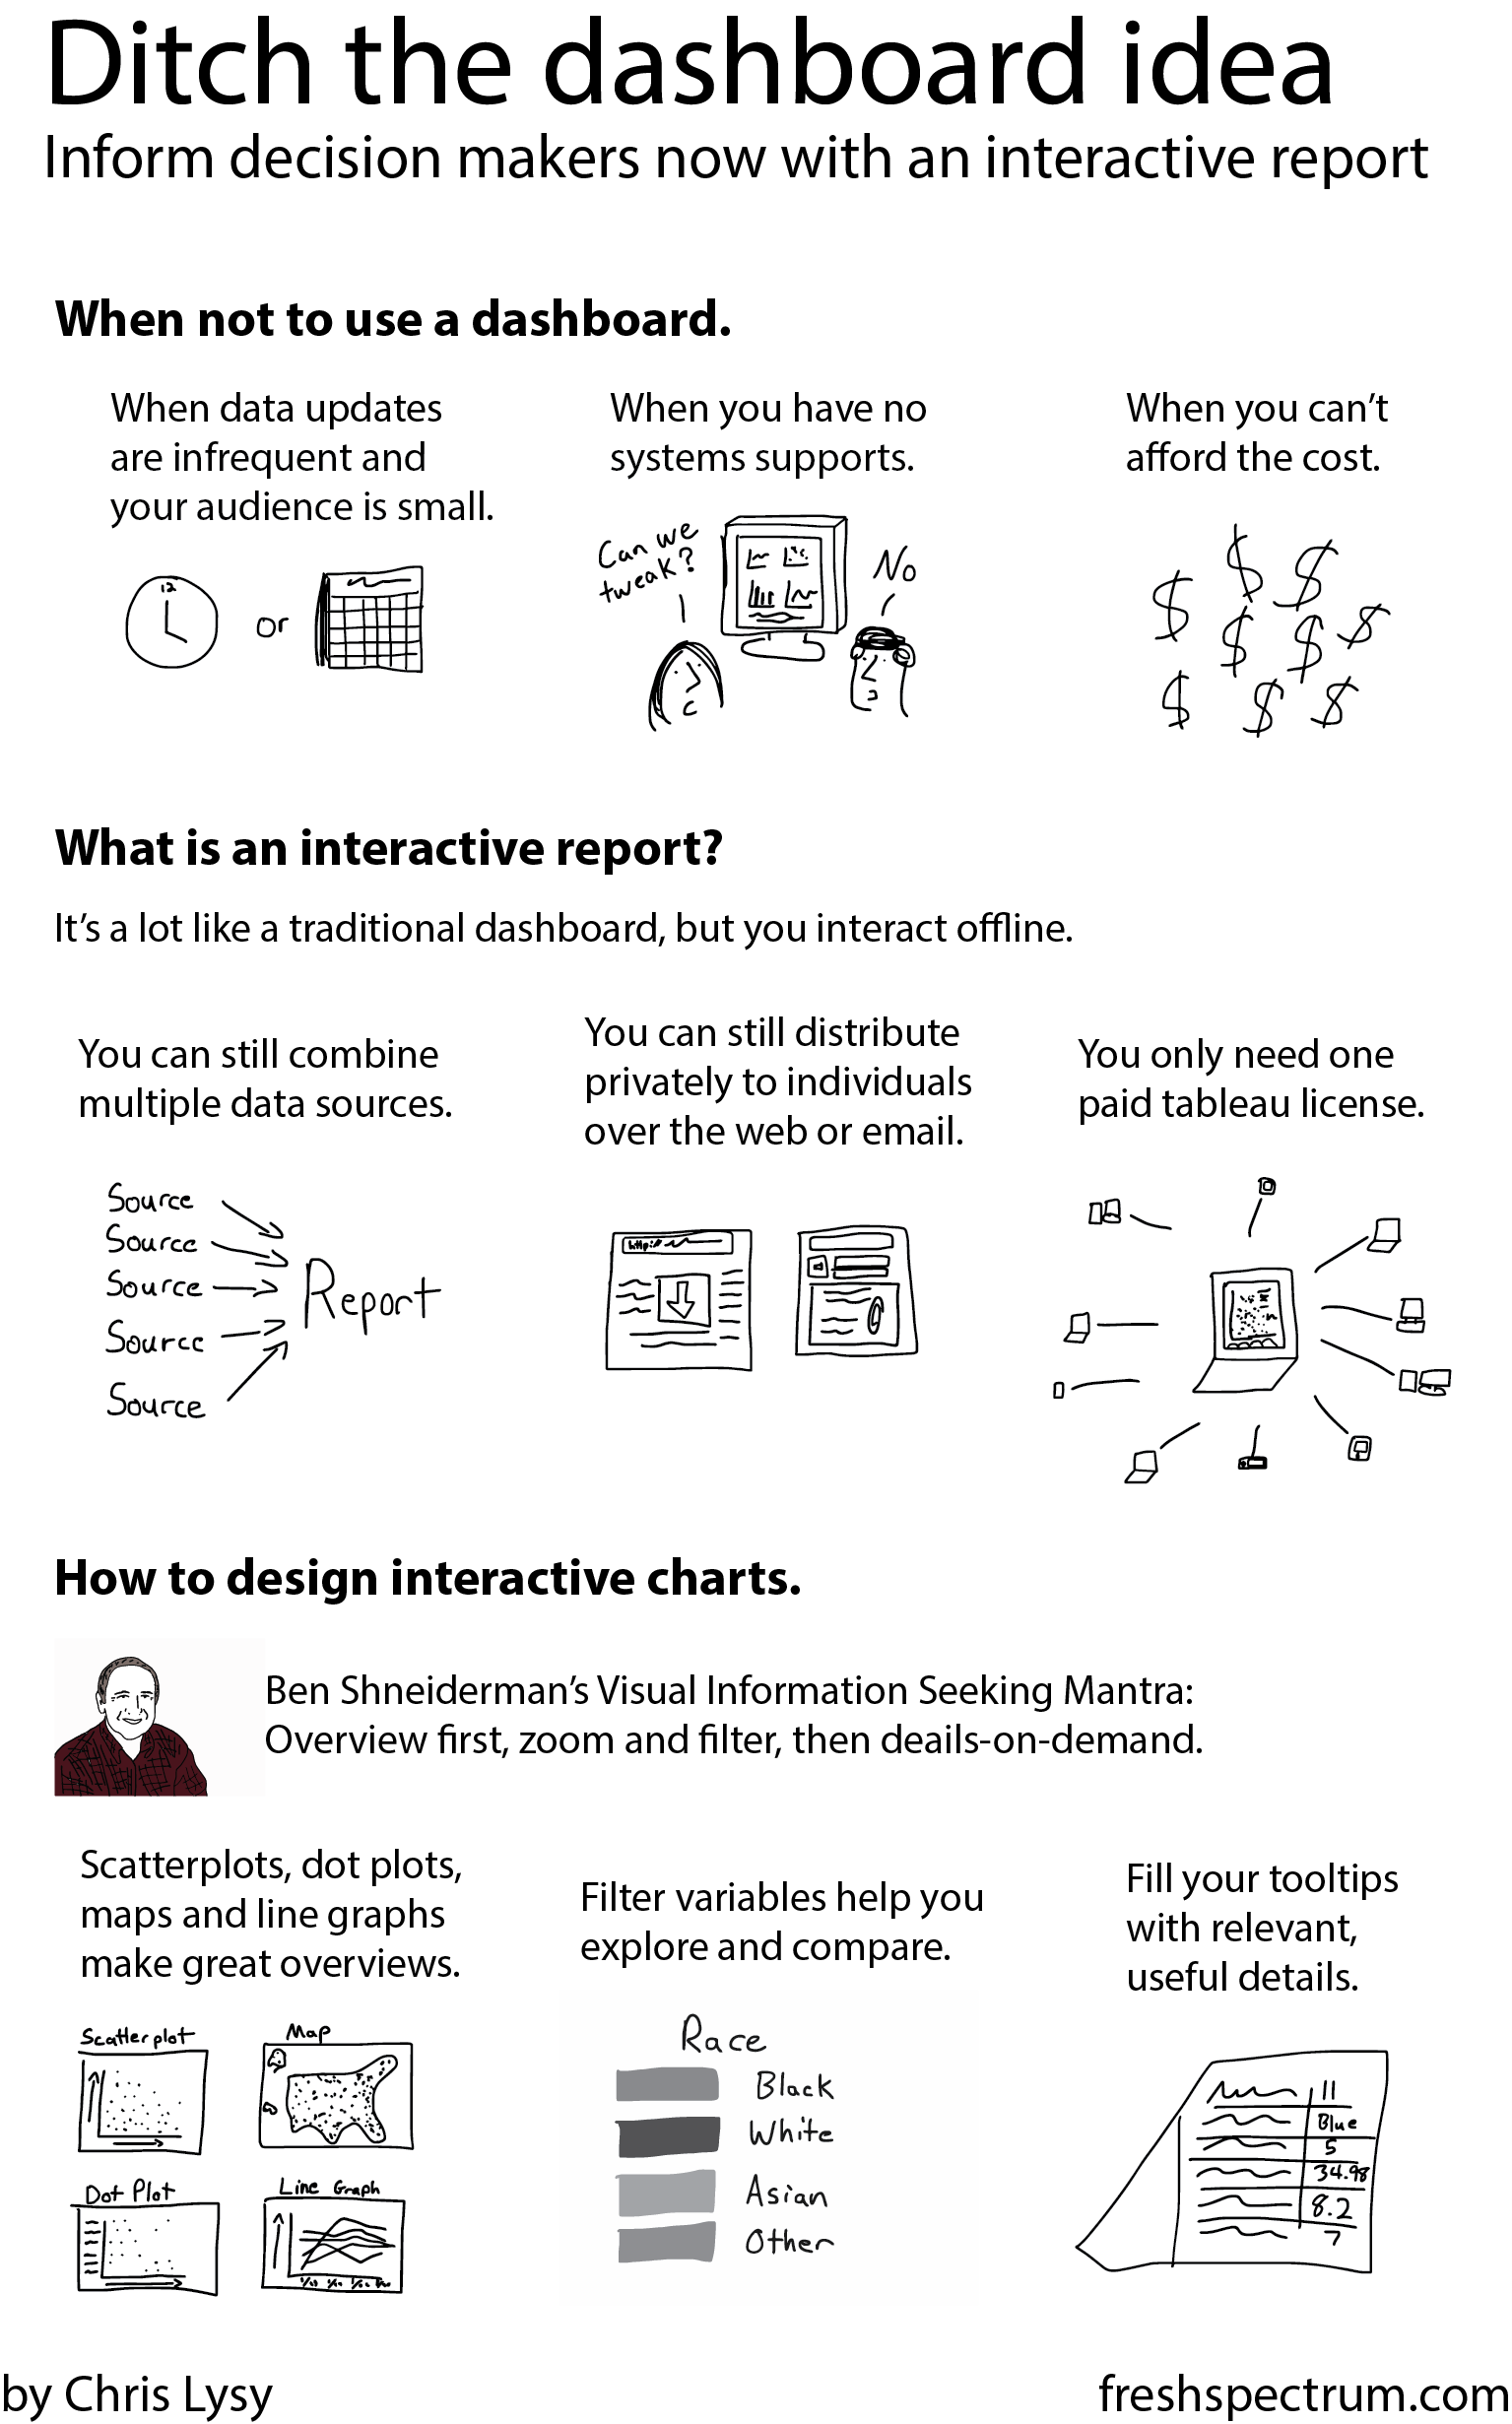 Infographic on creating interactive reports by Chris Lysy